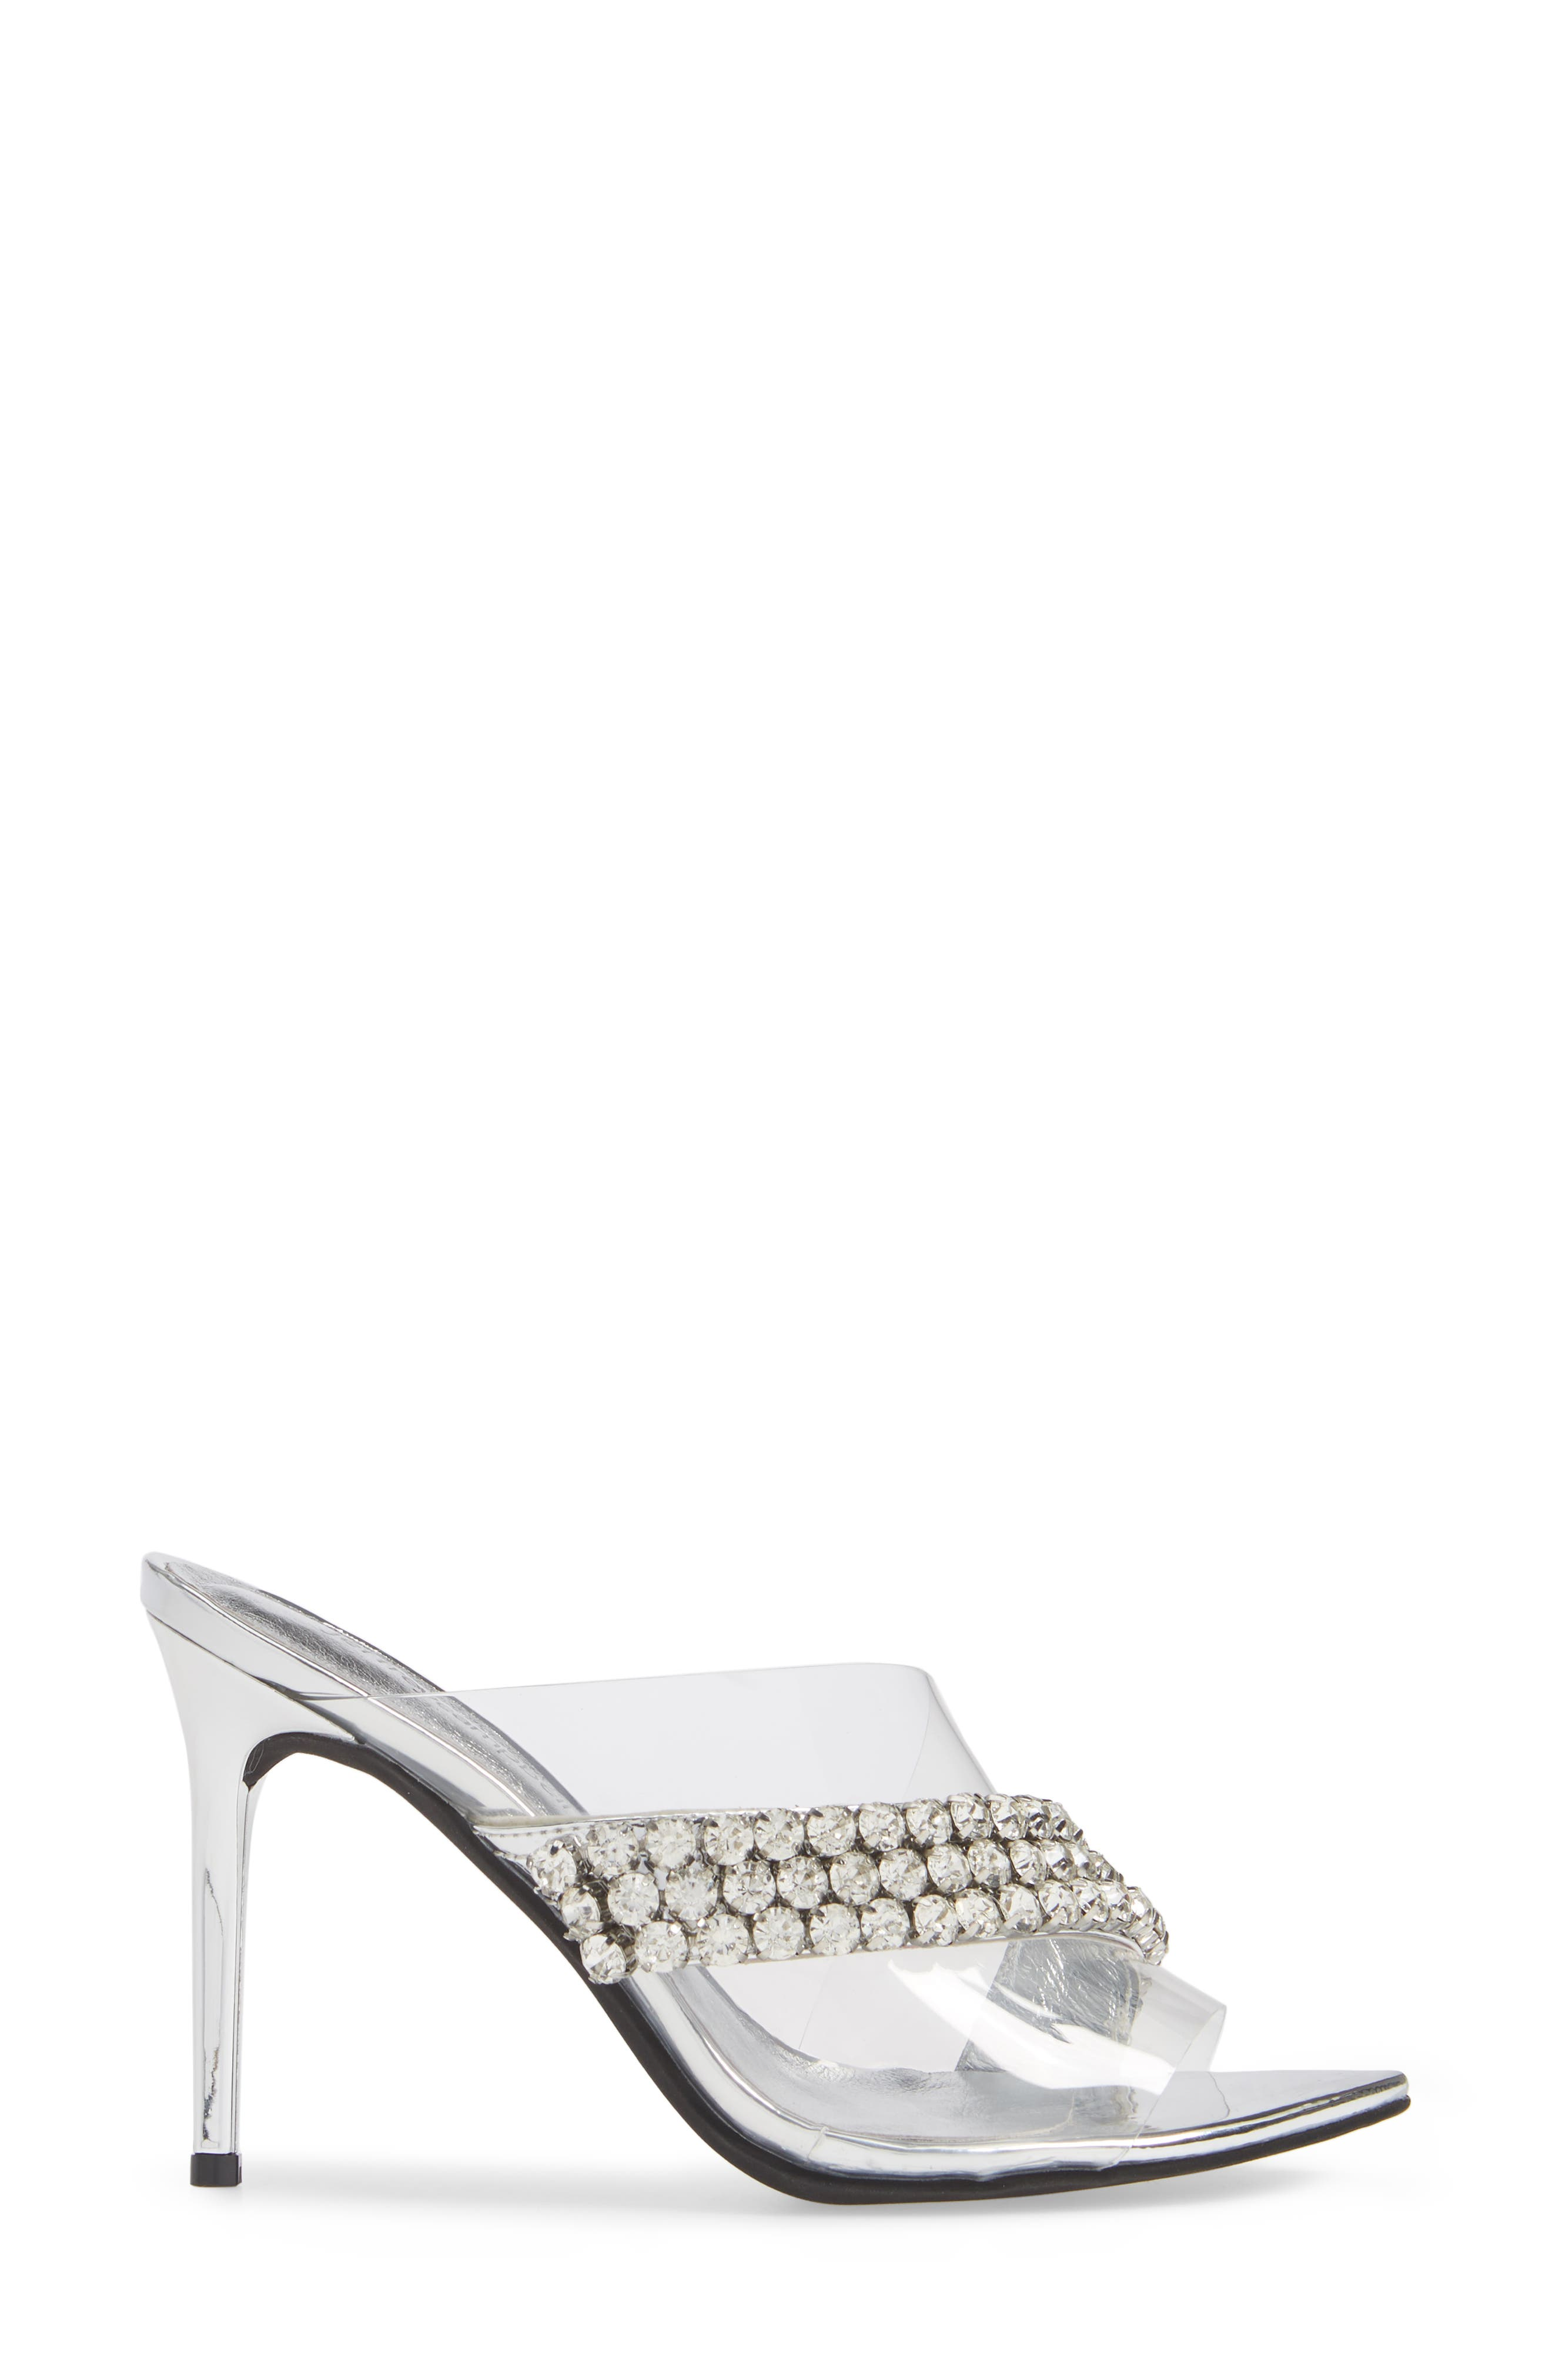 JEFFREY CAMPBELL, Glam Sandal, Alternate thumbnail 3, color, 044